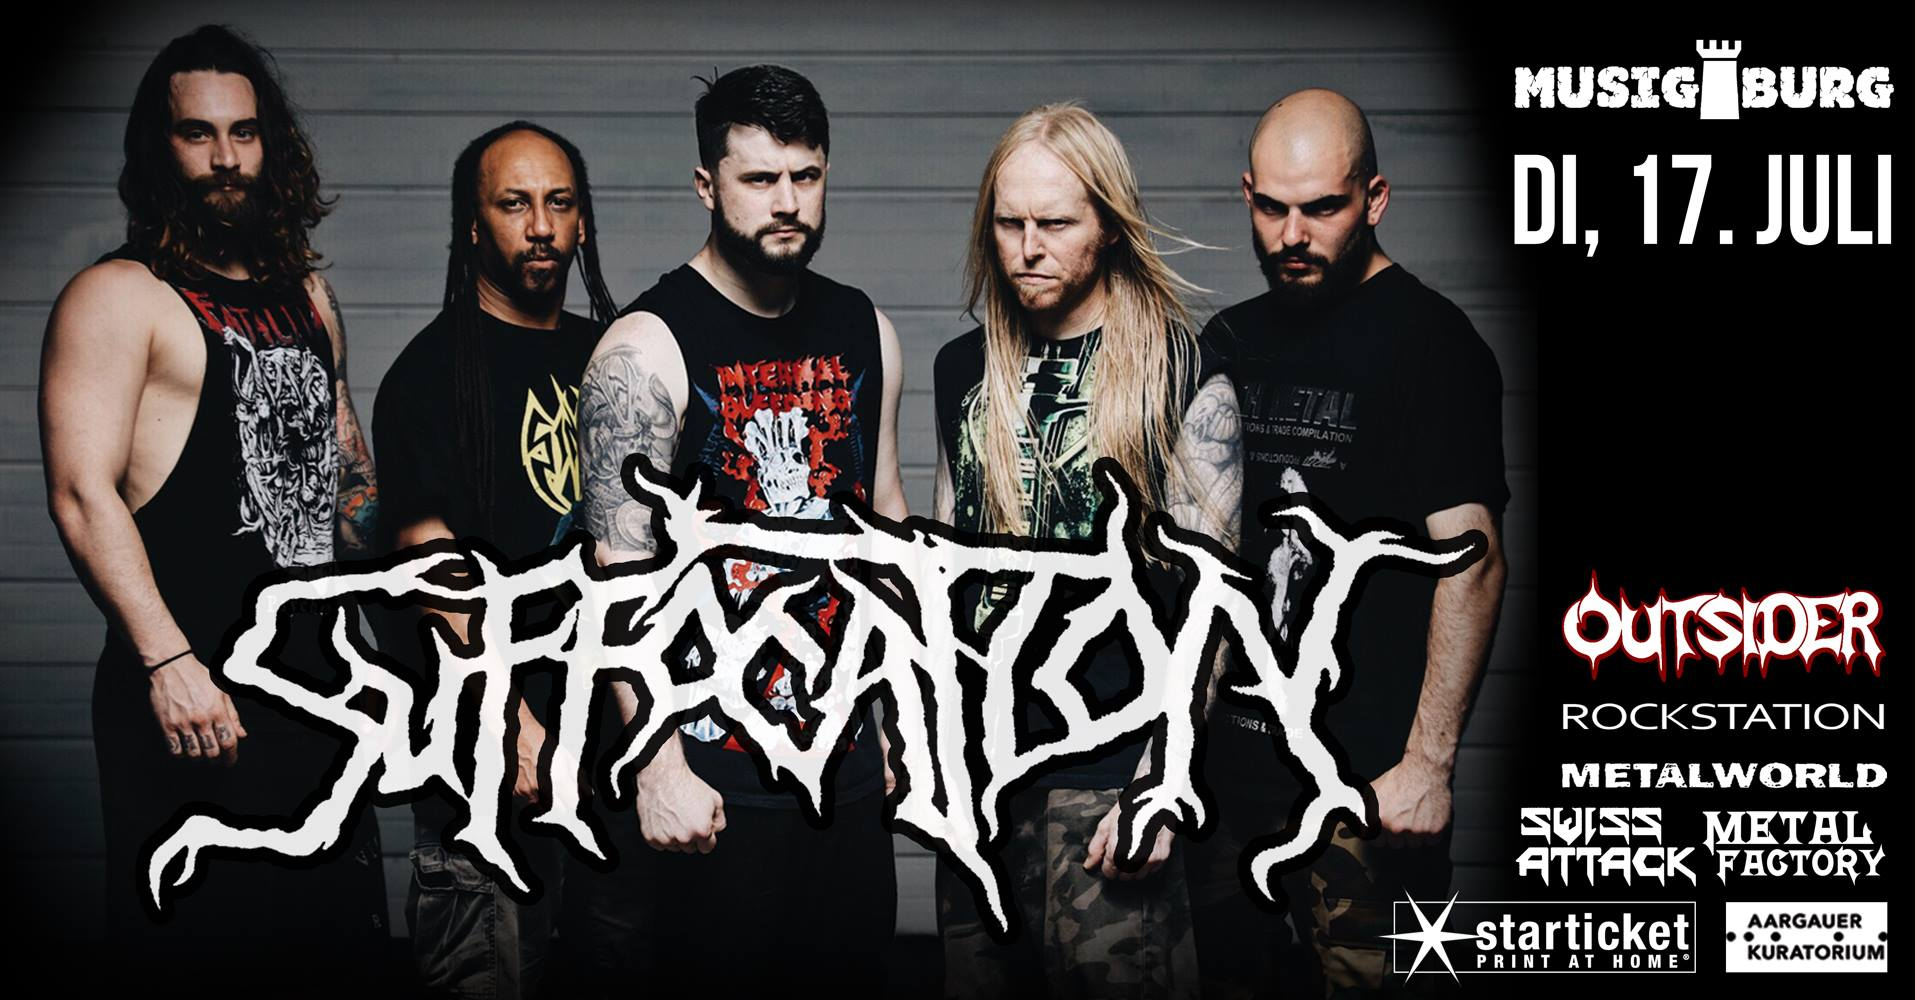 Witches flyer Suffocation + Witches @ Suffocation (Realm of Darkness European Tour: Part 2) / Witches Suffocating Summer Tour 2018 Musigburg Aarburg, Swizterland - CH